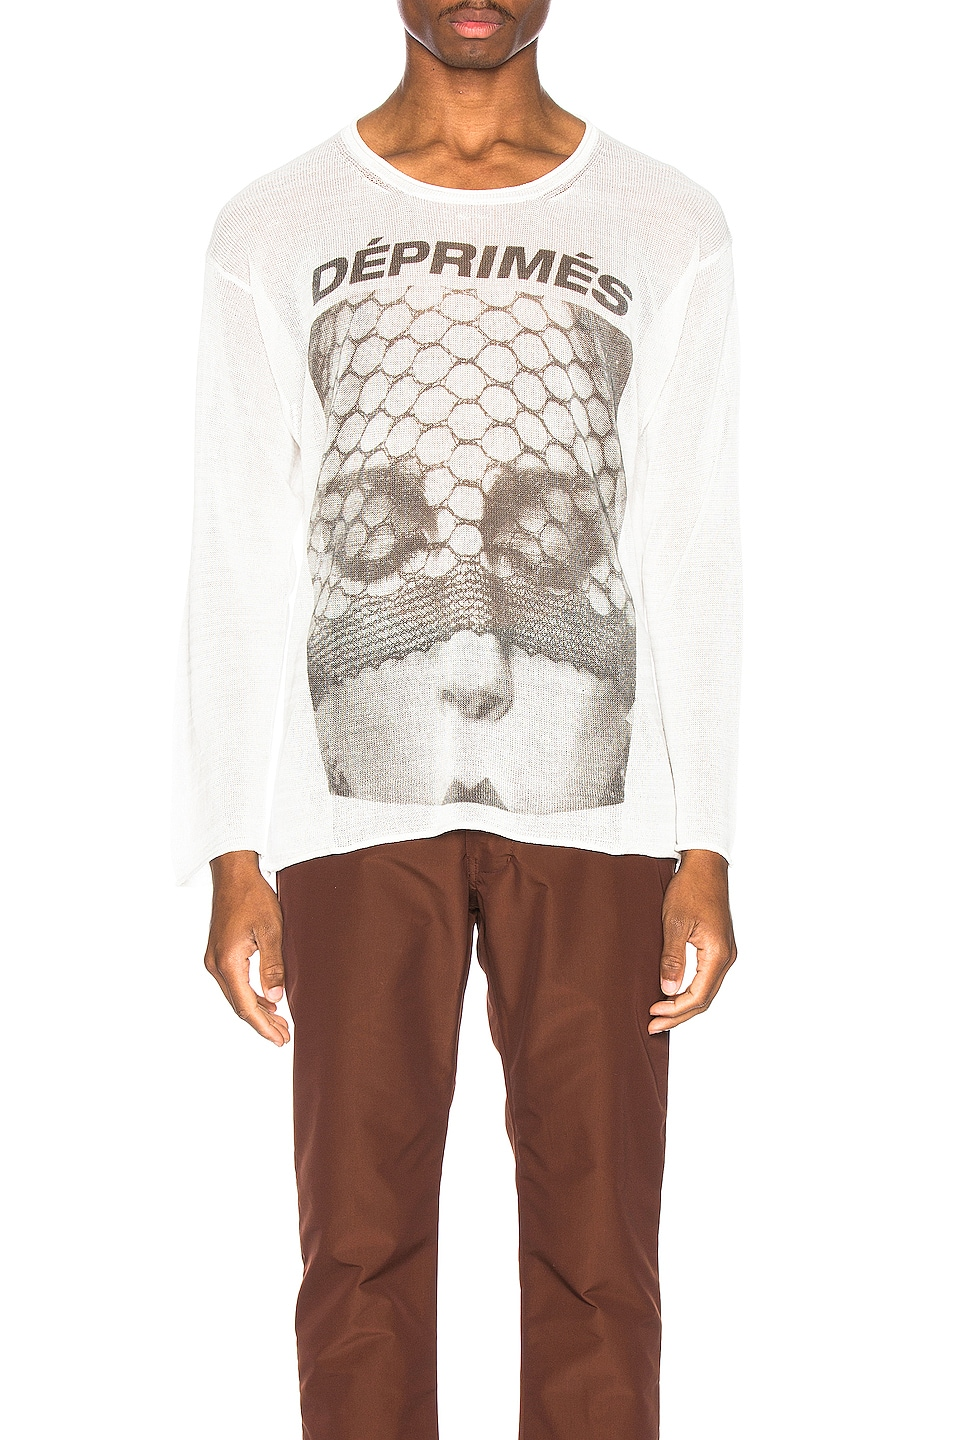 Image 1 of Enfants Riches Deprimes Cashmere Long Sleeve Print Tee in Cream & Black